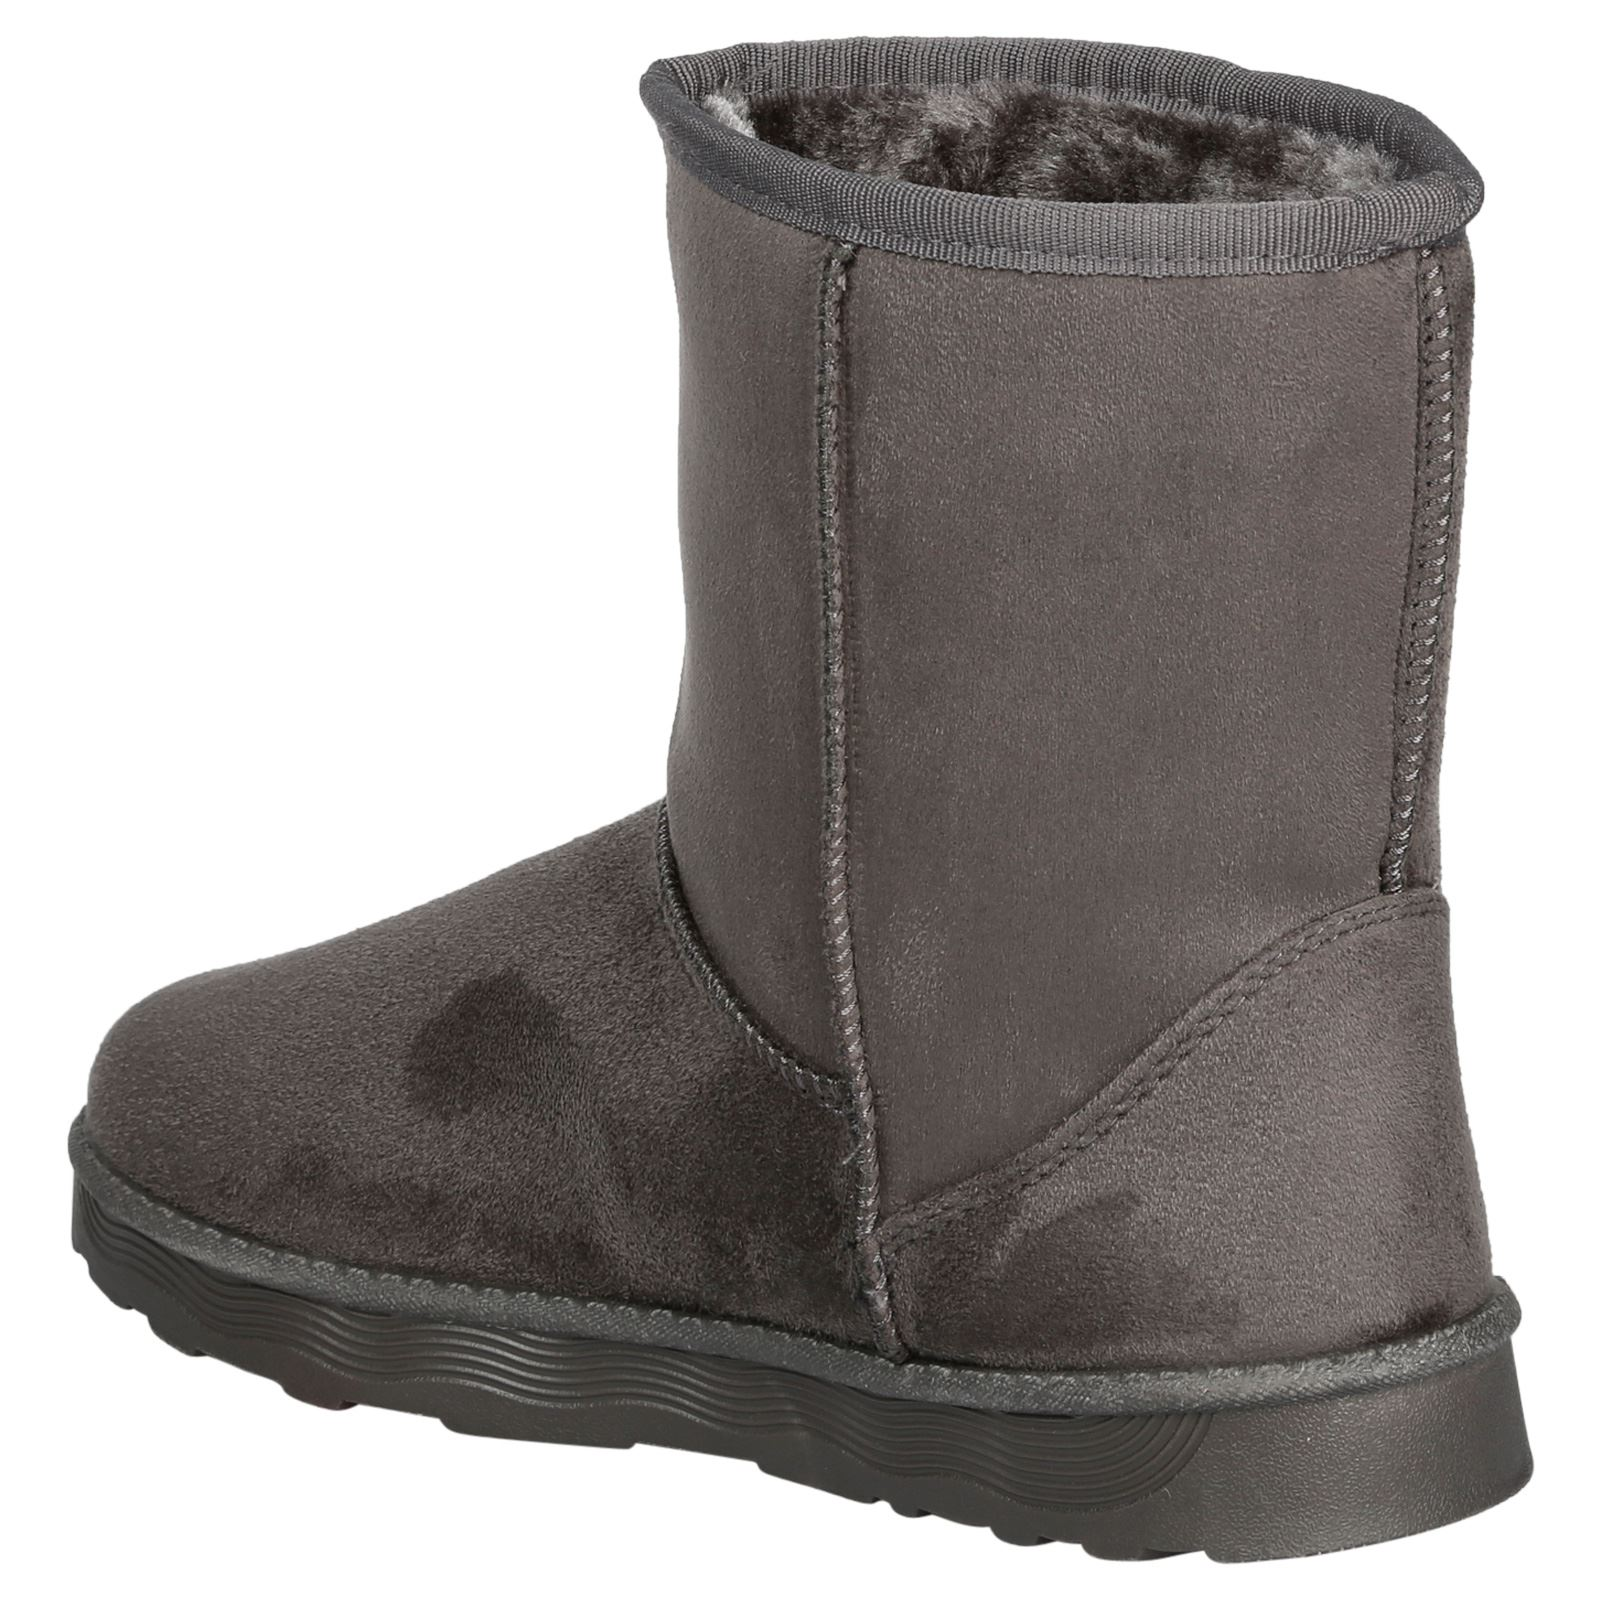 Paisleigh-Womens-Platfrom-Flat-Fur-Lined-Pull-On-Snug-Snow-Boots-Casual-Ladies thumbnail 12